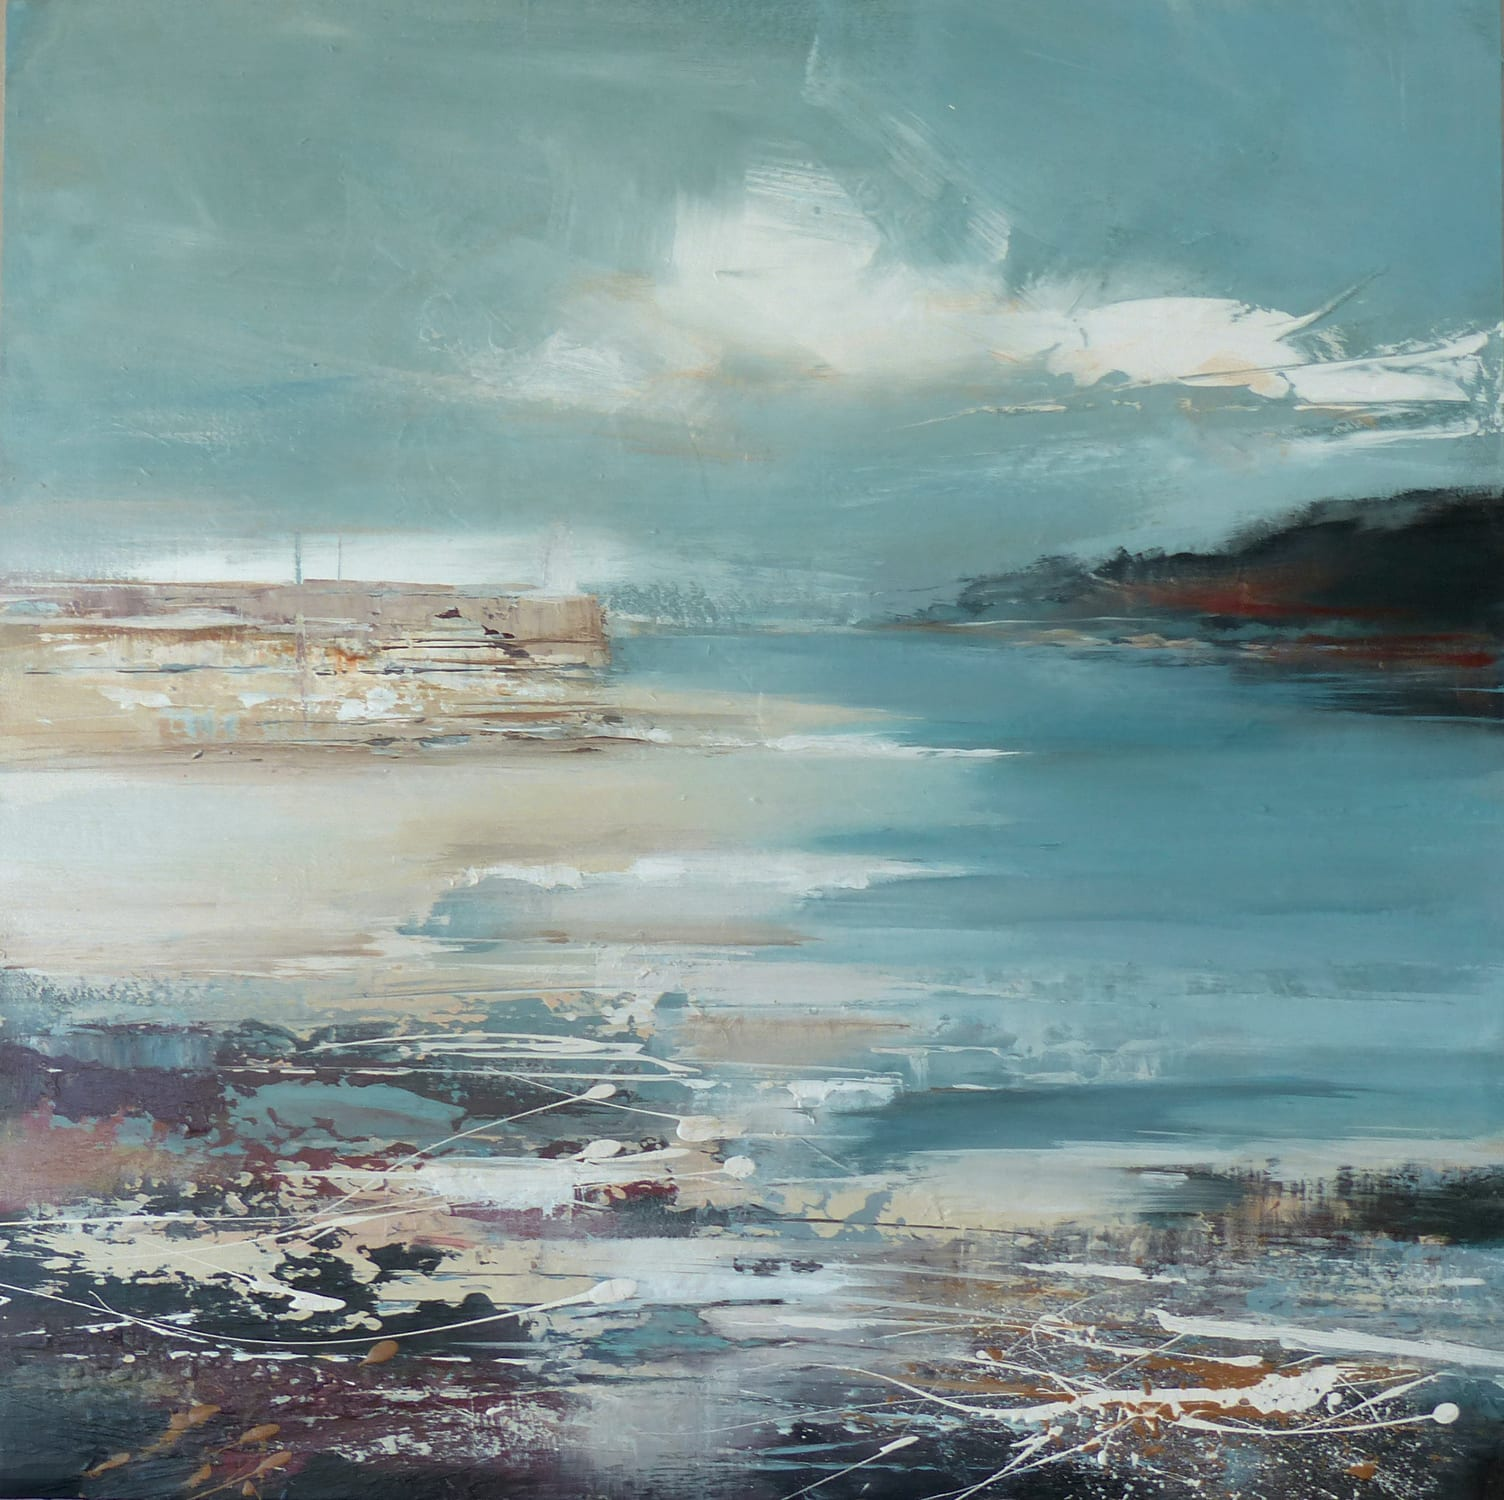 """<span class=""""link fancybox-details-link""""><a href=""""/store/artworks/7945-jenny-hirst-tide-ebbing-2021/"""">View Detail Page</a></span><div class=""""artist""""><strong>Jenny Hirst</strong></div> <div class=""""title""""><em>Tide Ebbing</em>, 2021</div> <div class=""""medium"""">acrylic on panel with white tray frame</div> <div class=""""dimensions"""">h. 50 cm x w. 50 cm <br /> Framed size: h. 55 cm x w. 55 cm </div><div class=""""price"""">£850.00</div><div class=""""copyright_line"""">Own Art: £85 x 10 months, 0% APR</div>"""